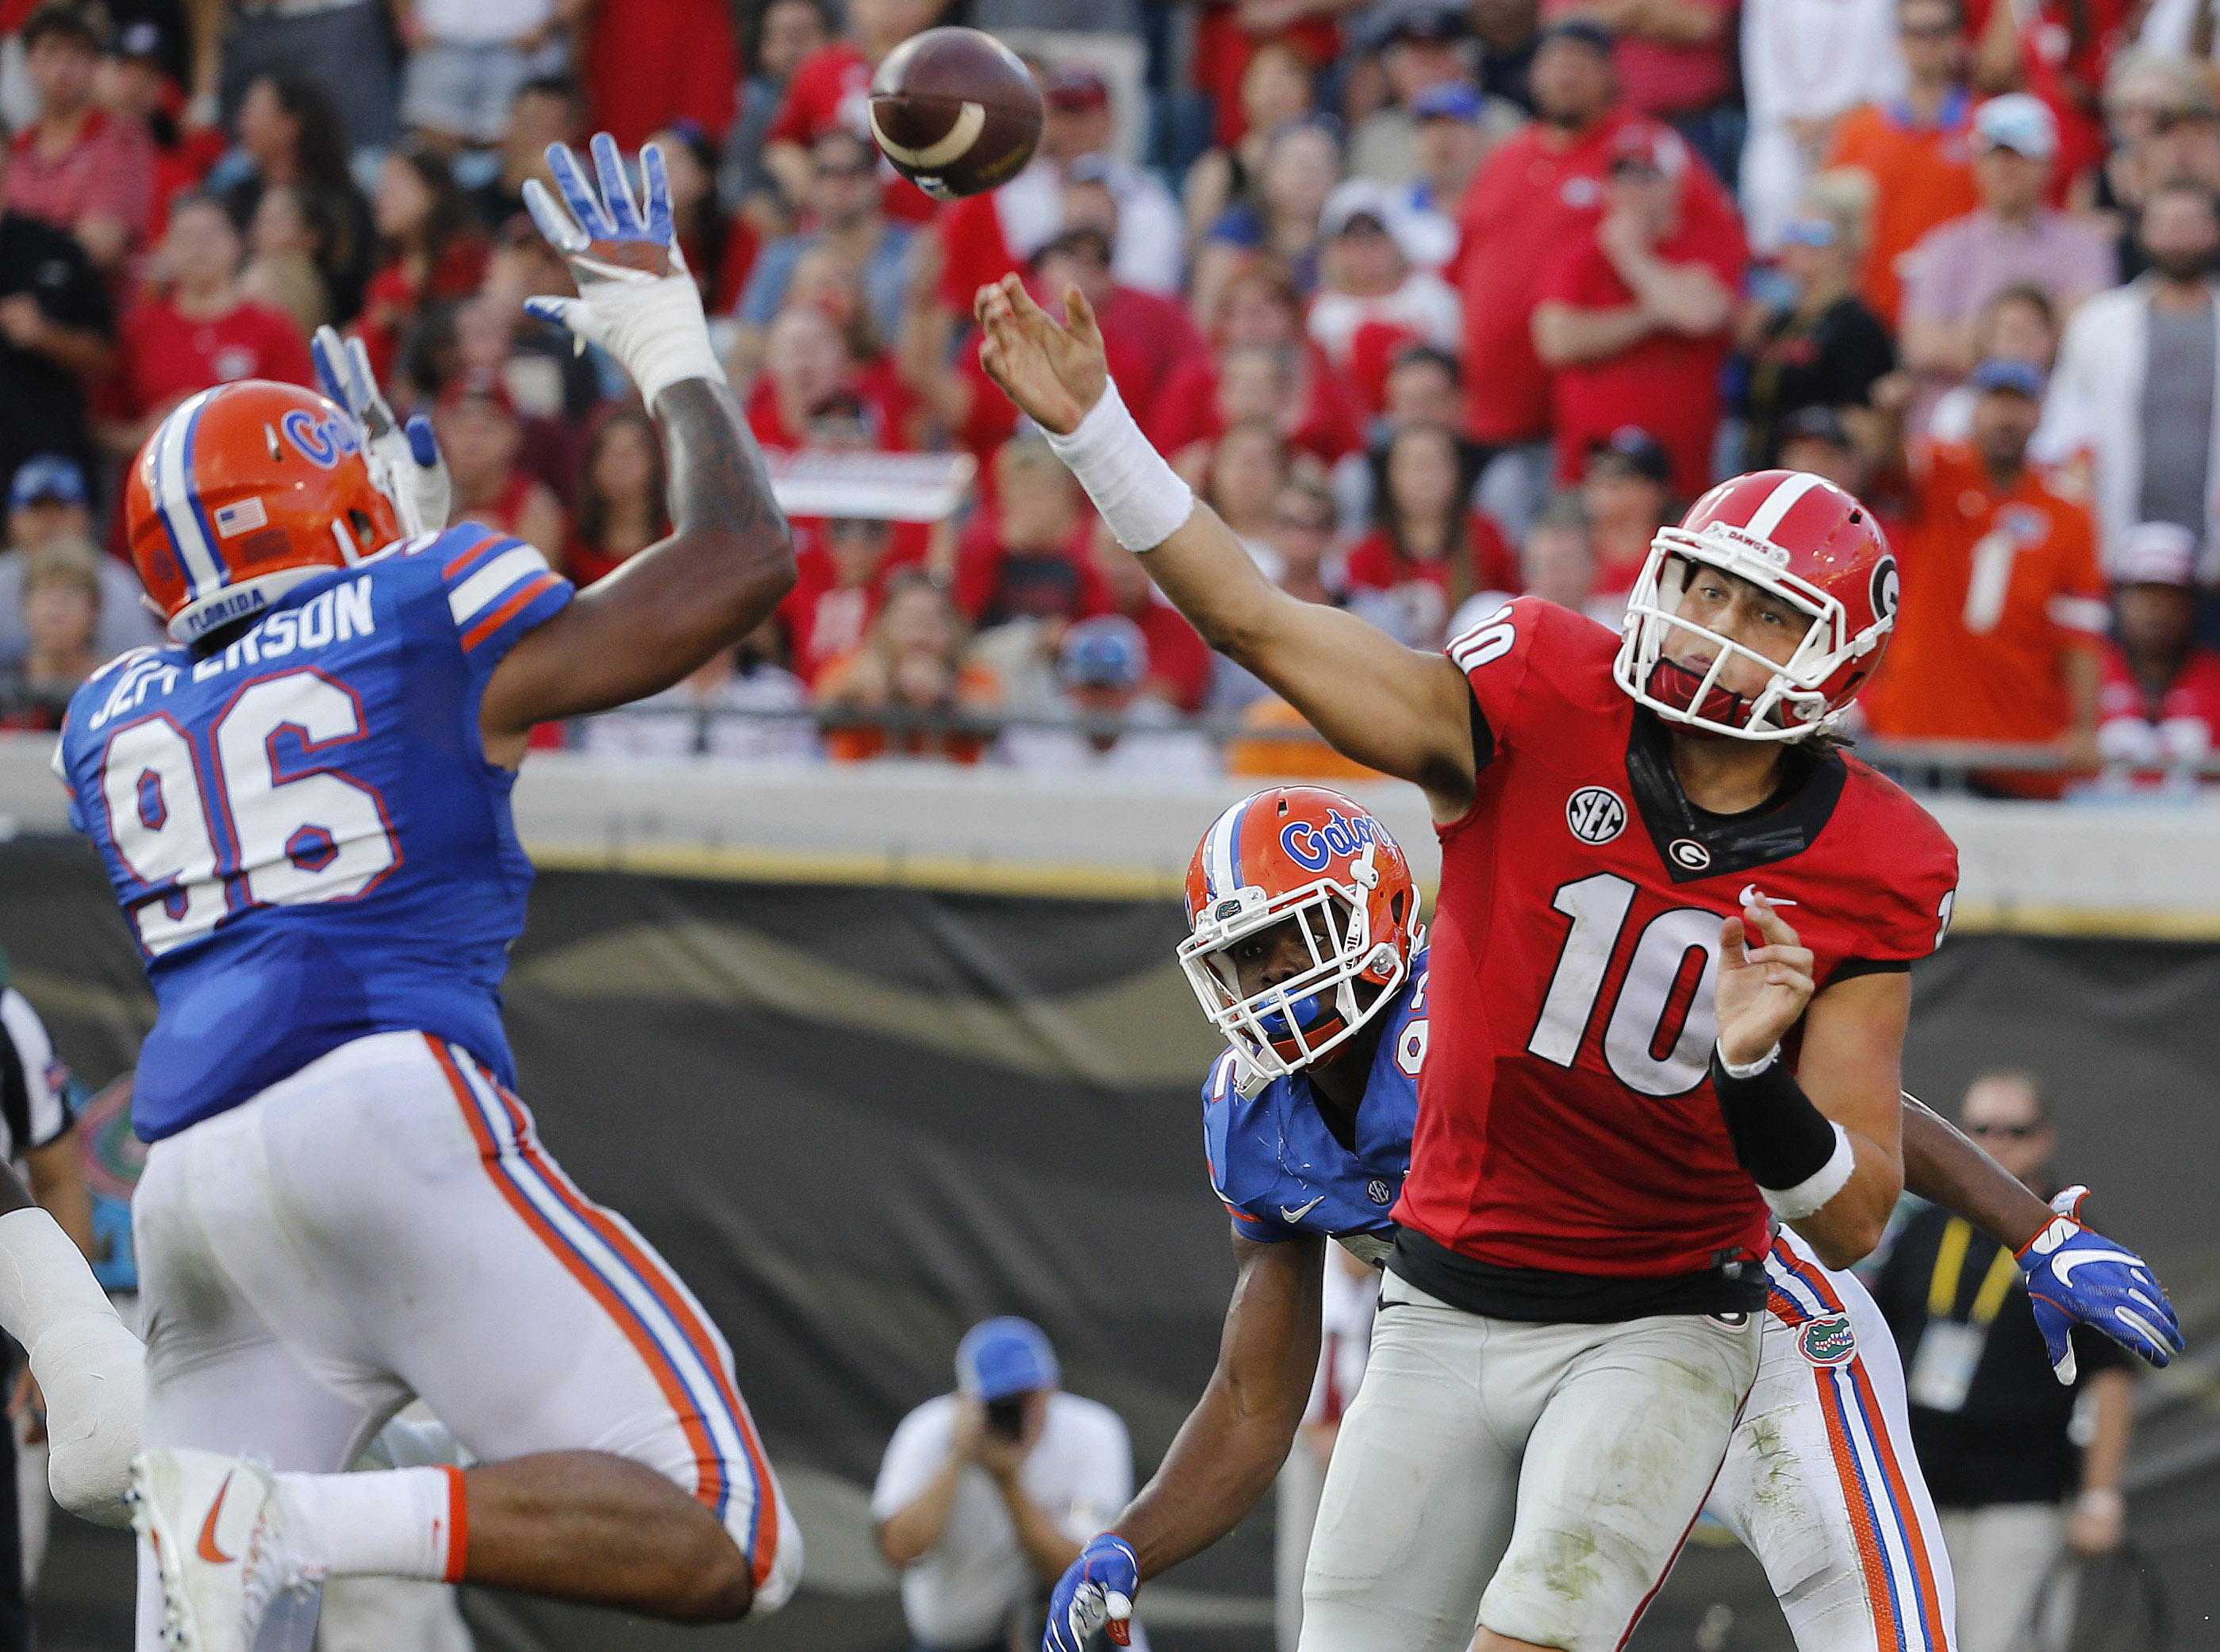 9640587-ncaa-football-georgia-vs-florida